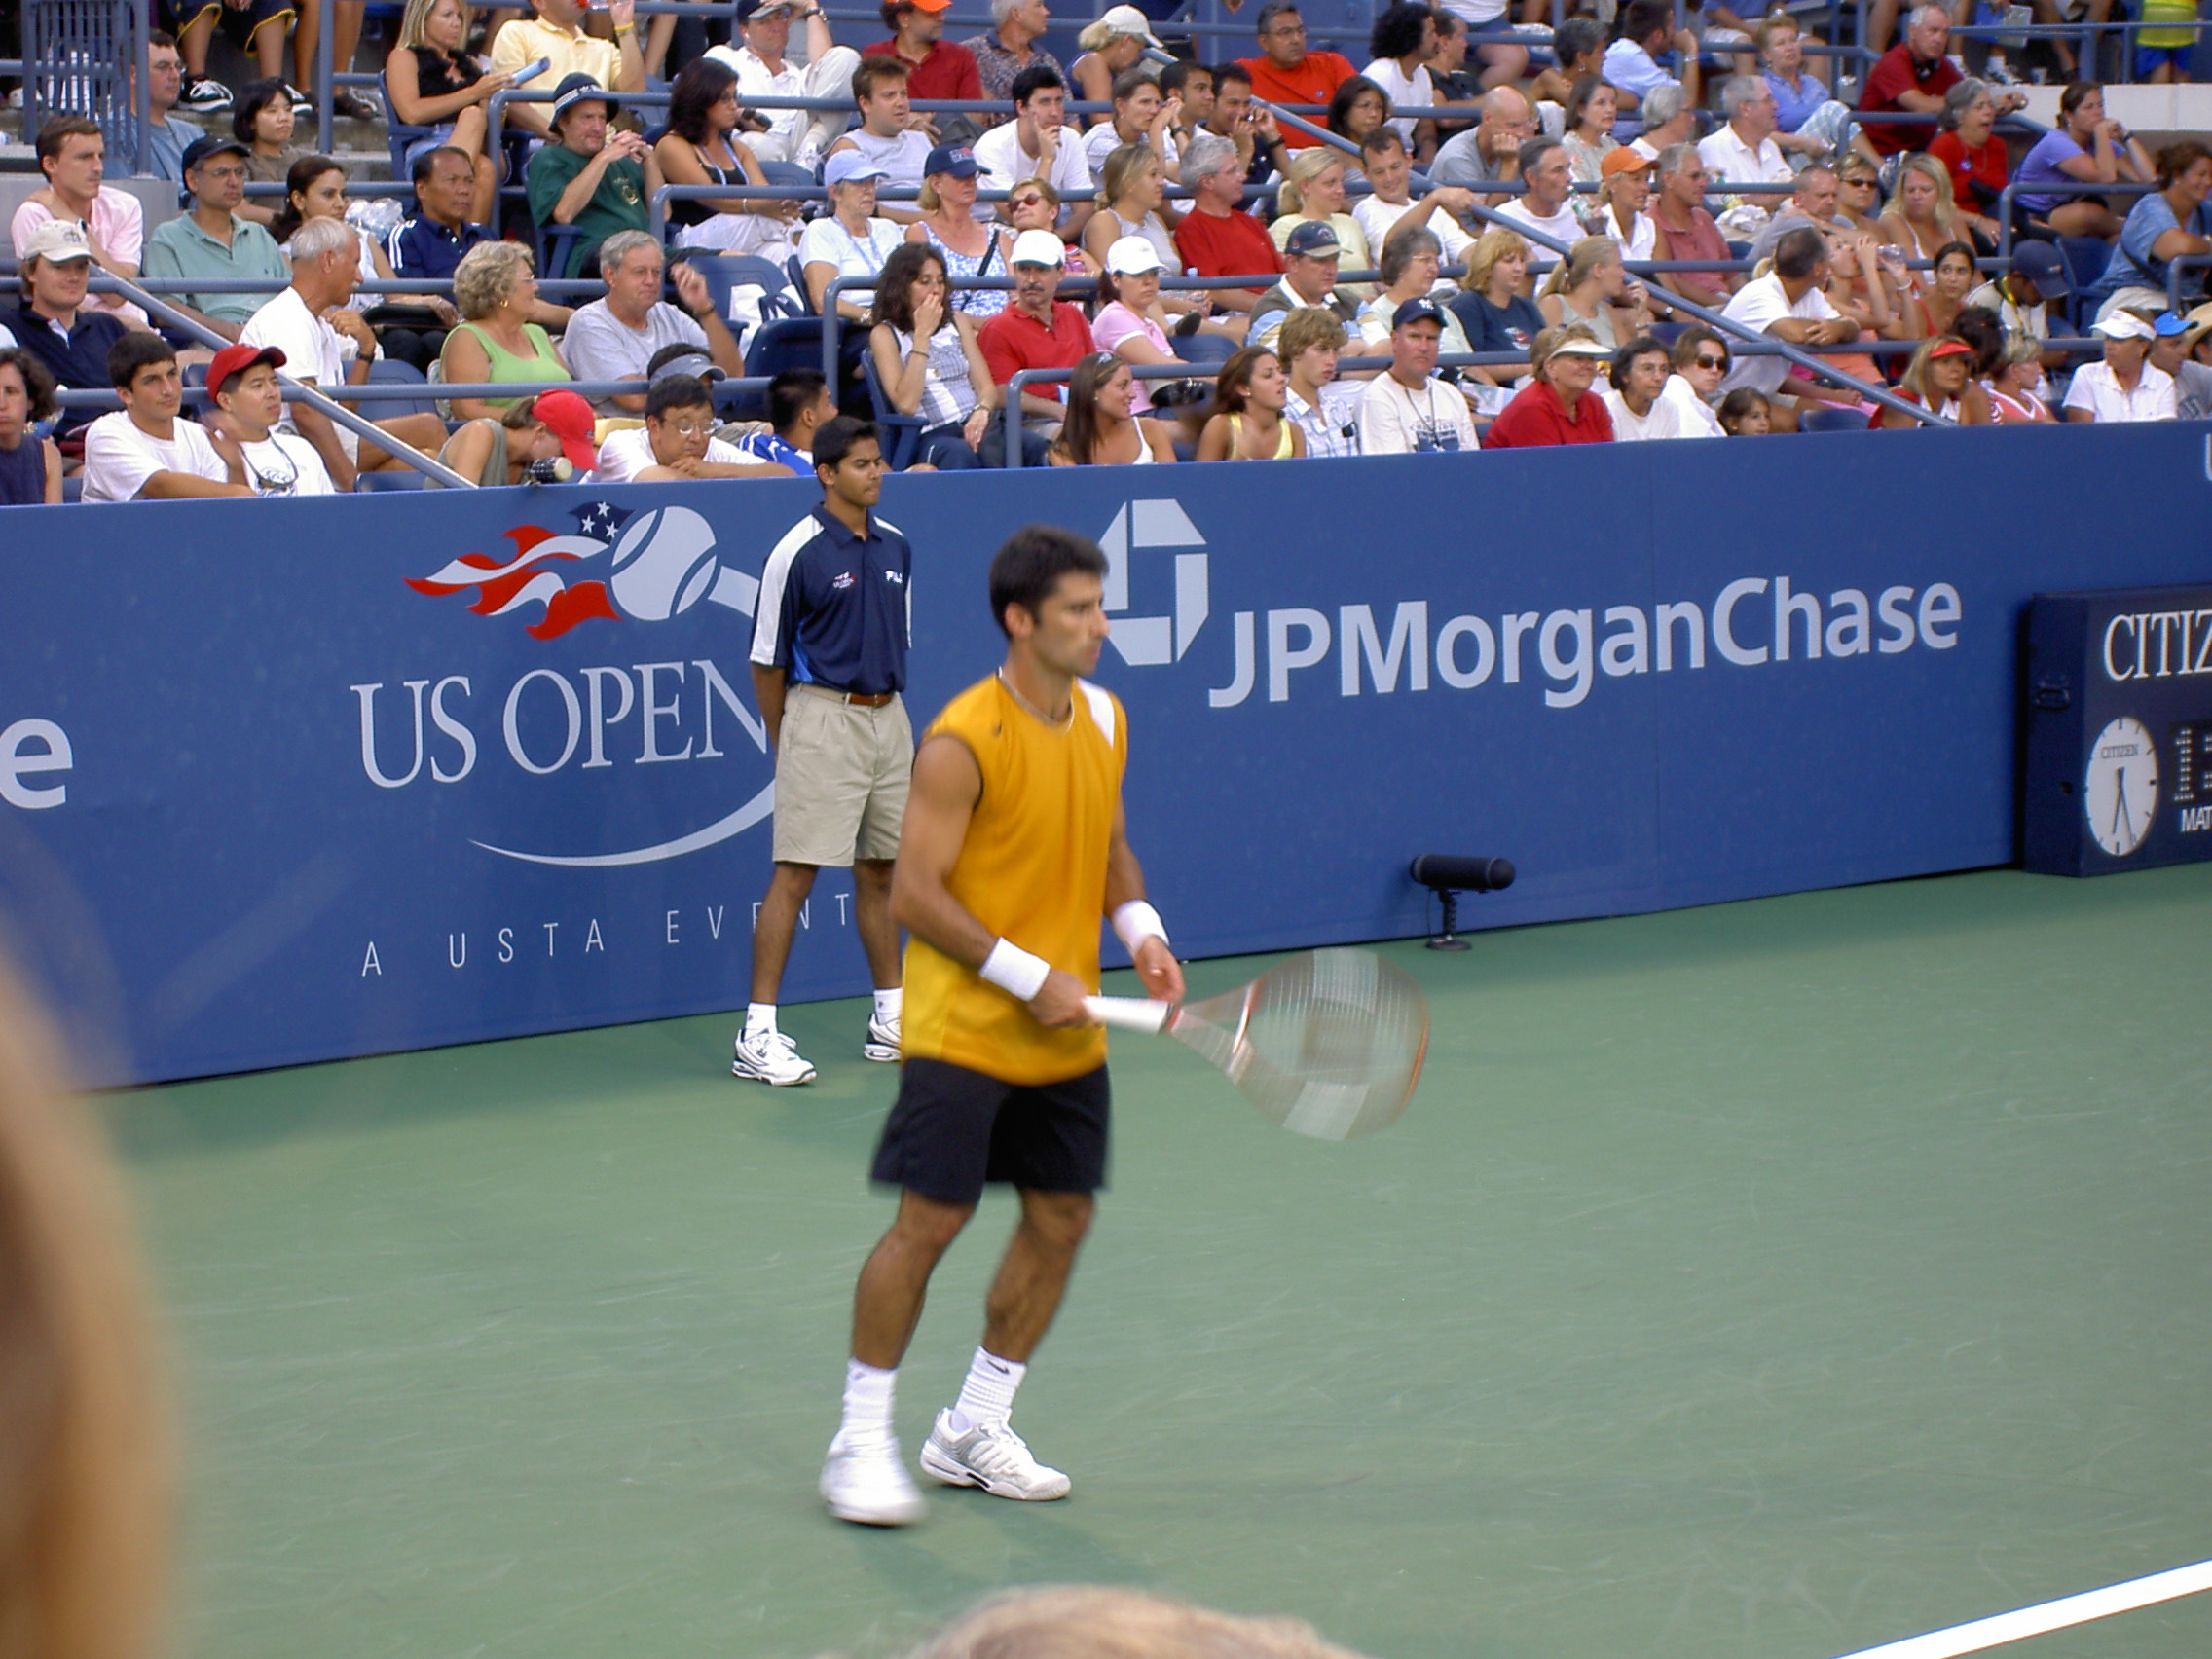 File:Sargis Sargisian US Open 2004.jpg - Wikimedia Commons